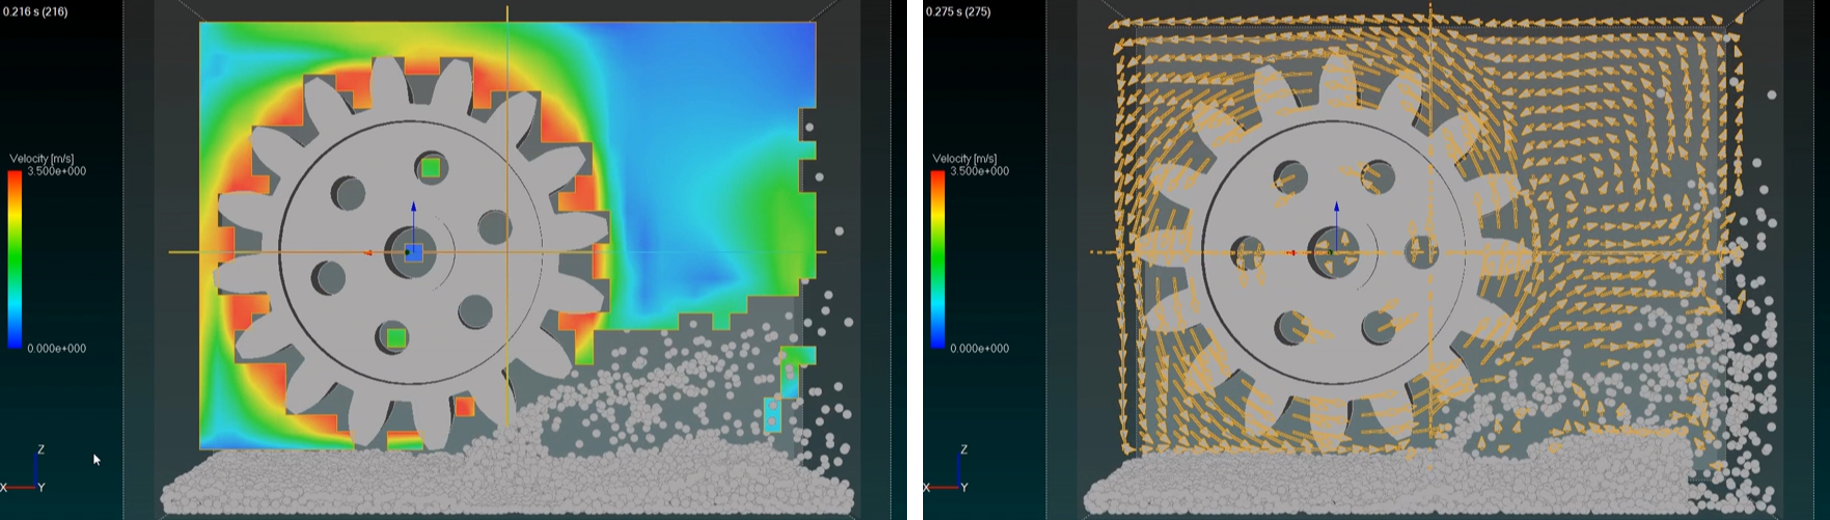 particleworks-whatsnew-air-flow-cfd-solver.png